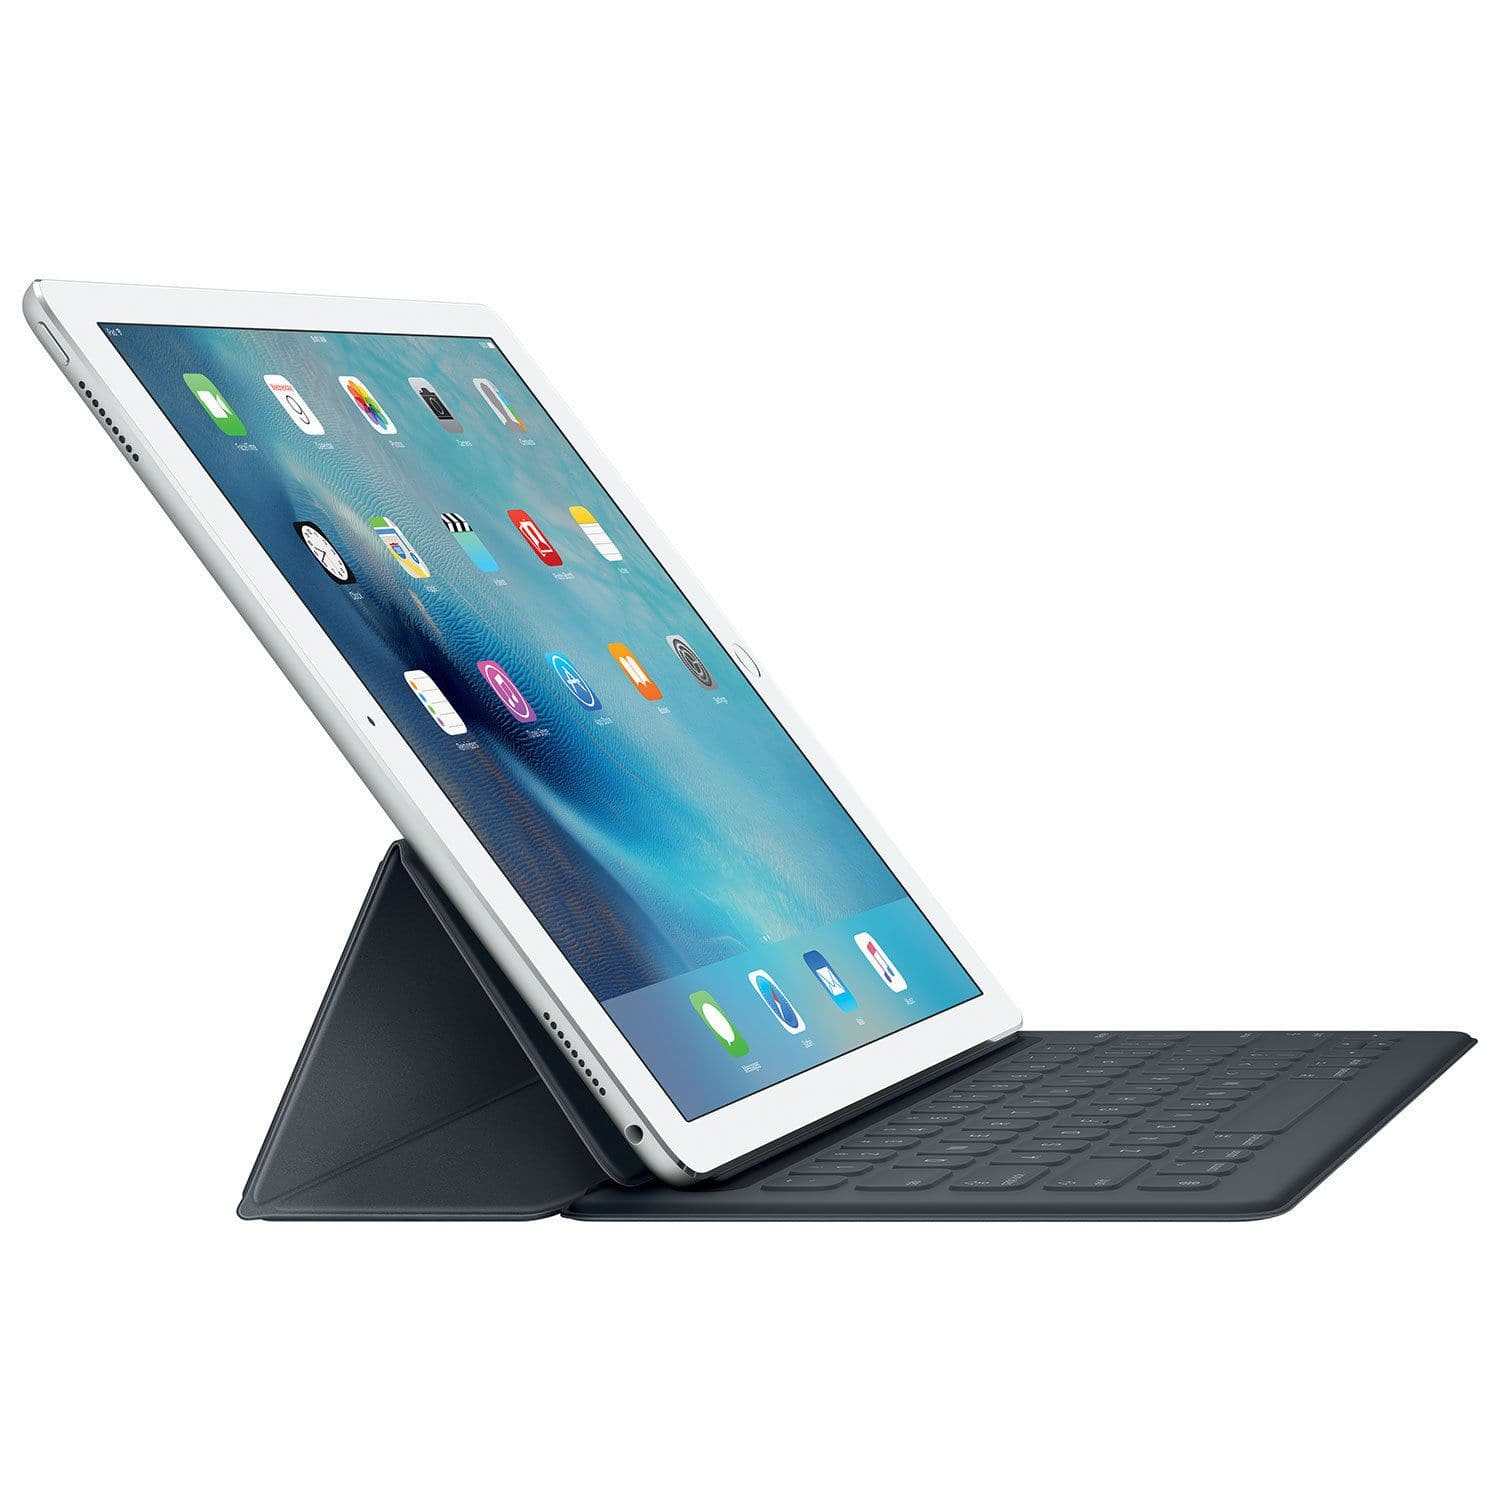 "Apple iPad Pro 12.9"" Smart Keyboard - Grey (MJYR2AM/A)"